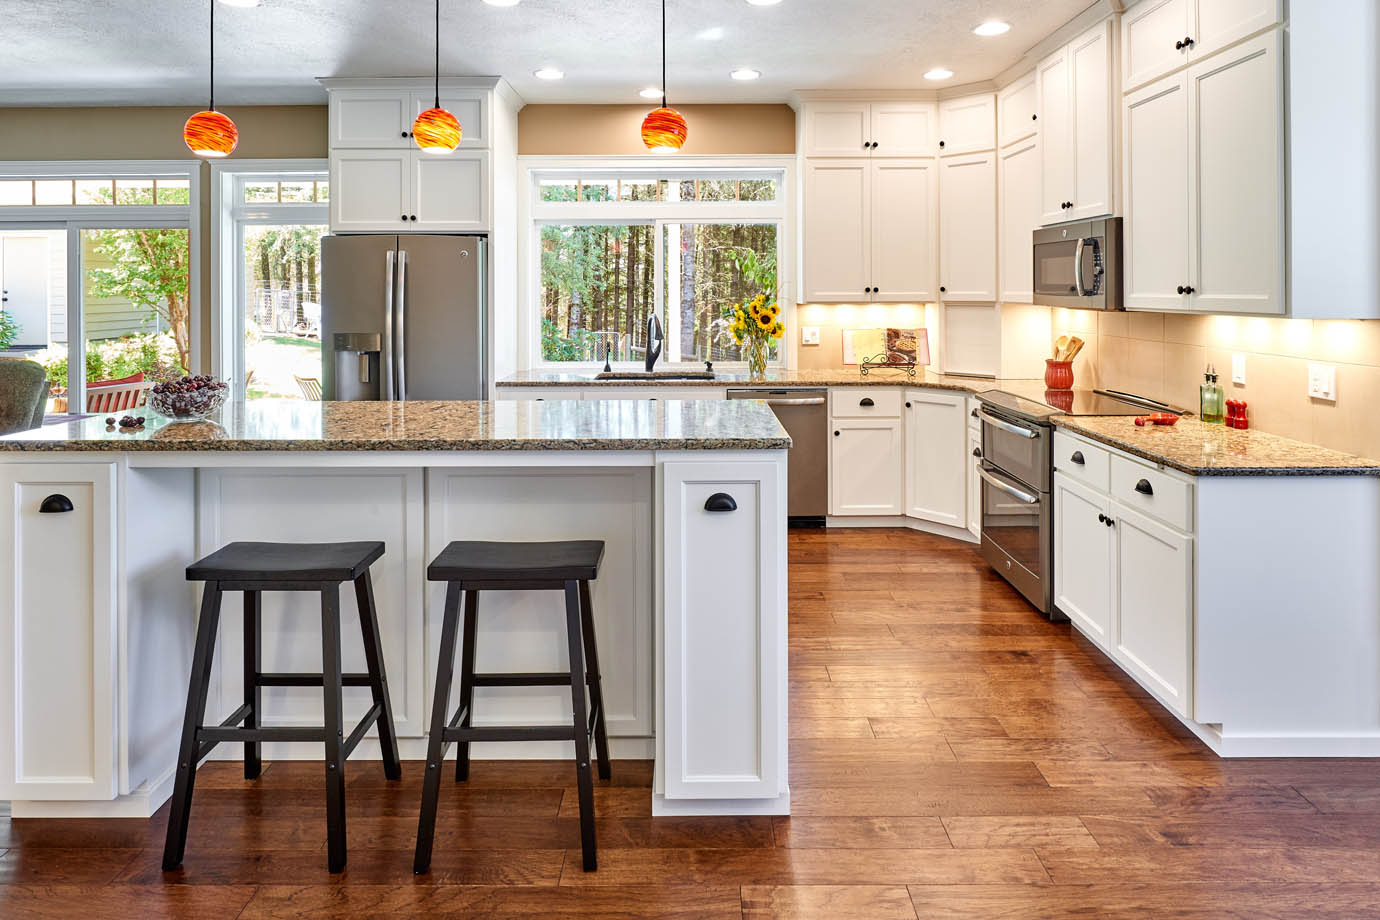 Design-Build remodeling contractor Powell Construction designs a white kitchen with many windows, stone countertops, and pendant lighting.